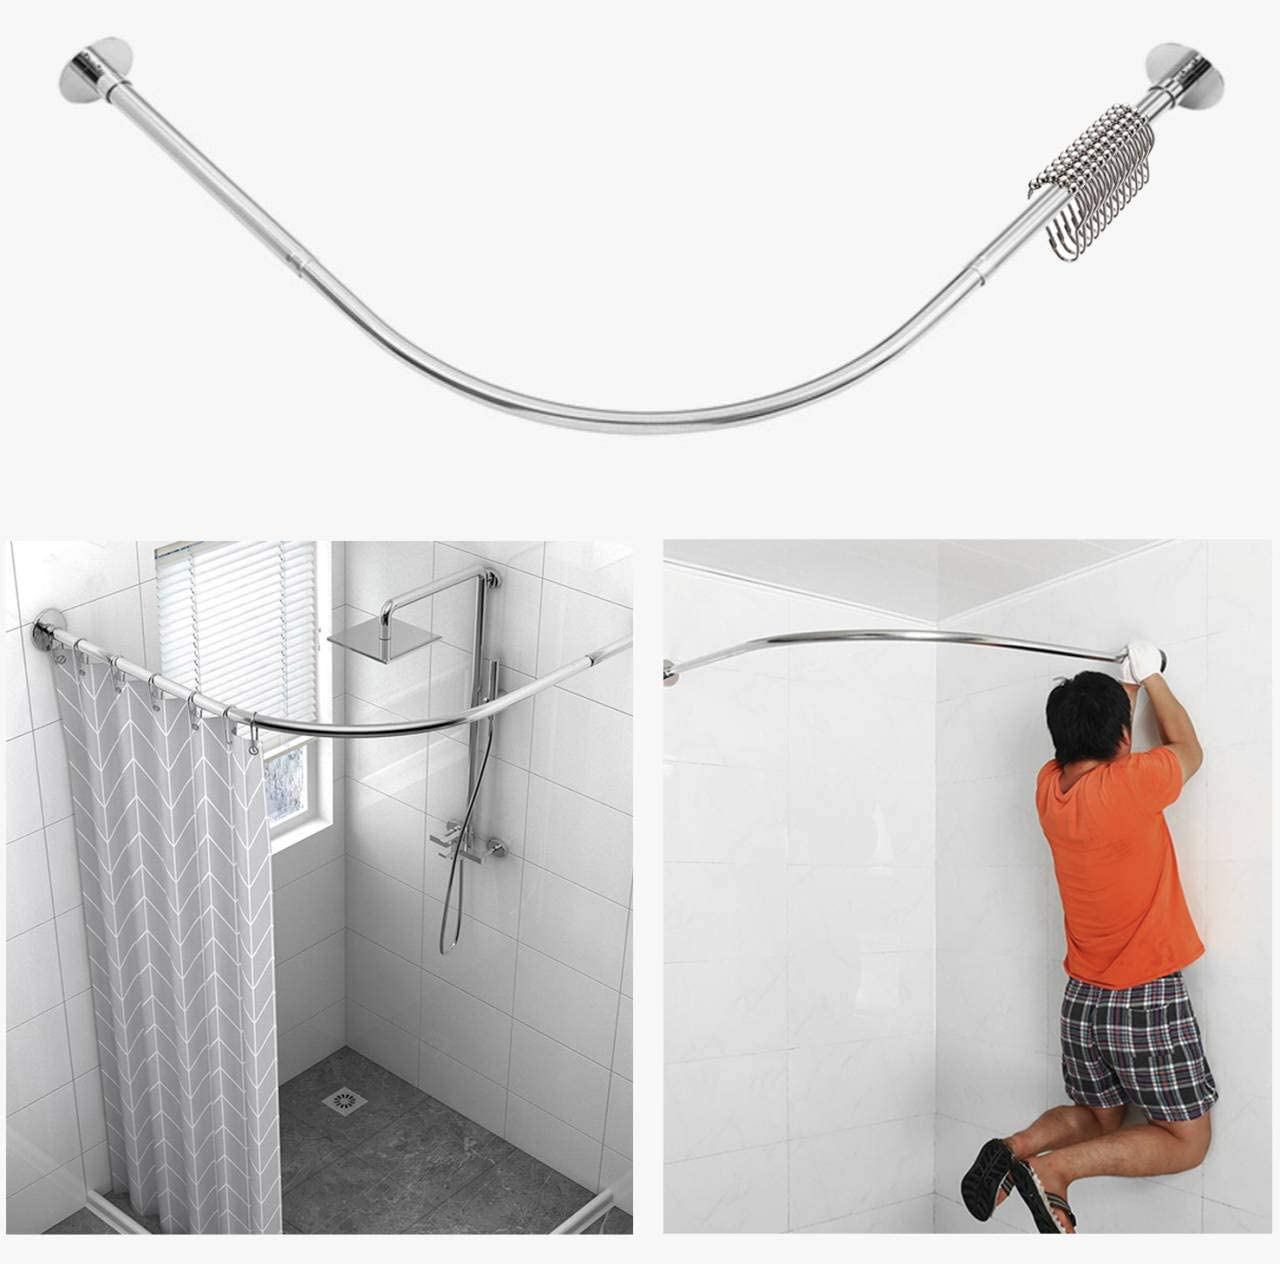 tanxih corner shower curtain rod adjustable stainless steel l shaped rack drill free install for bathroom bathtub clothing store 35 5 51 2 x